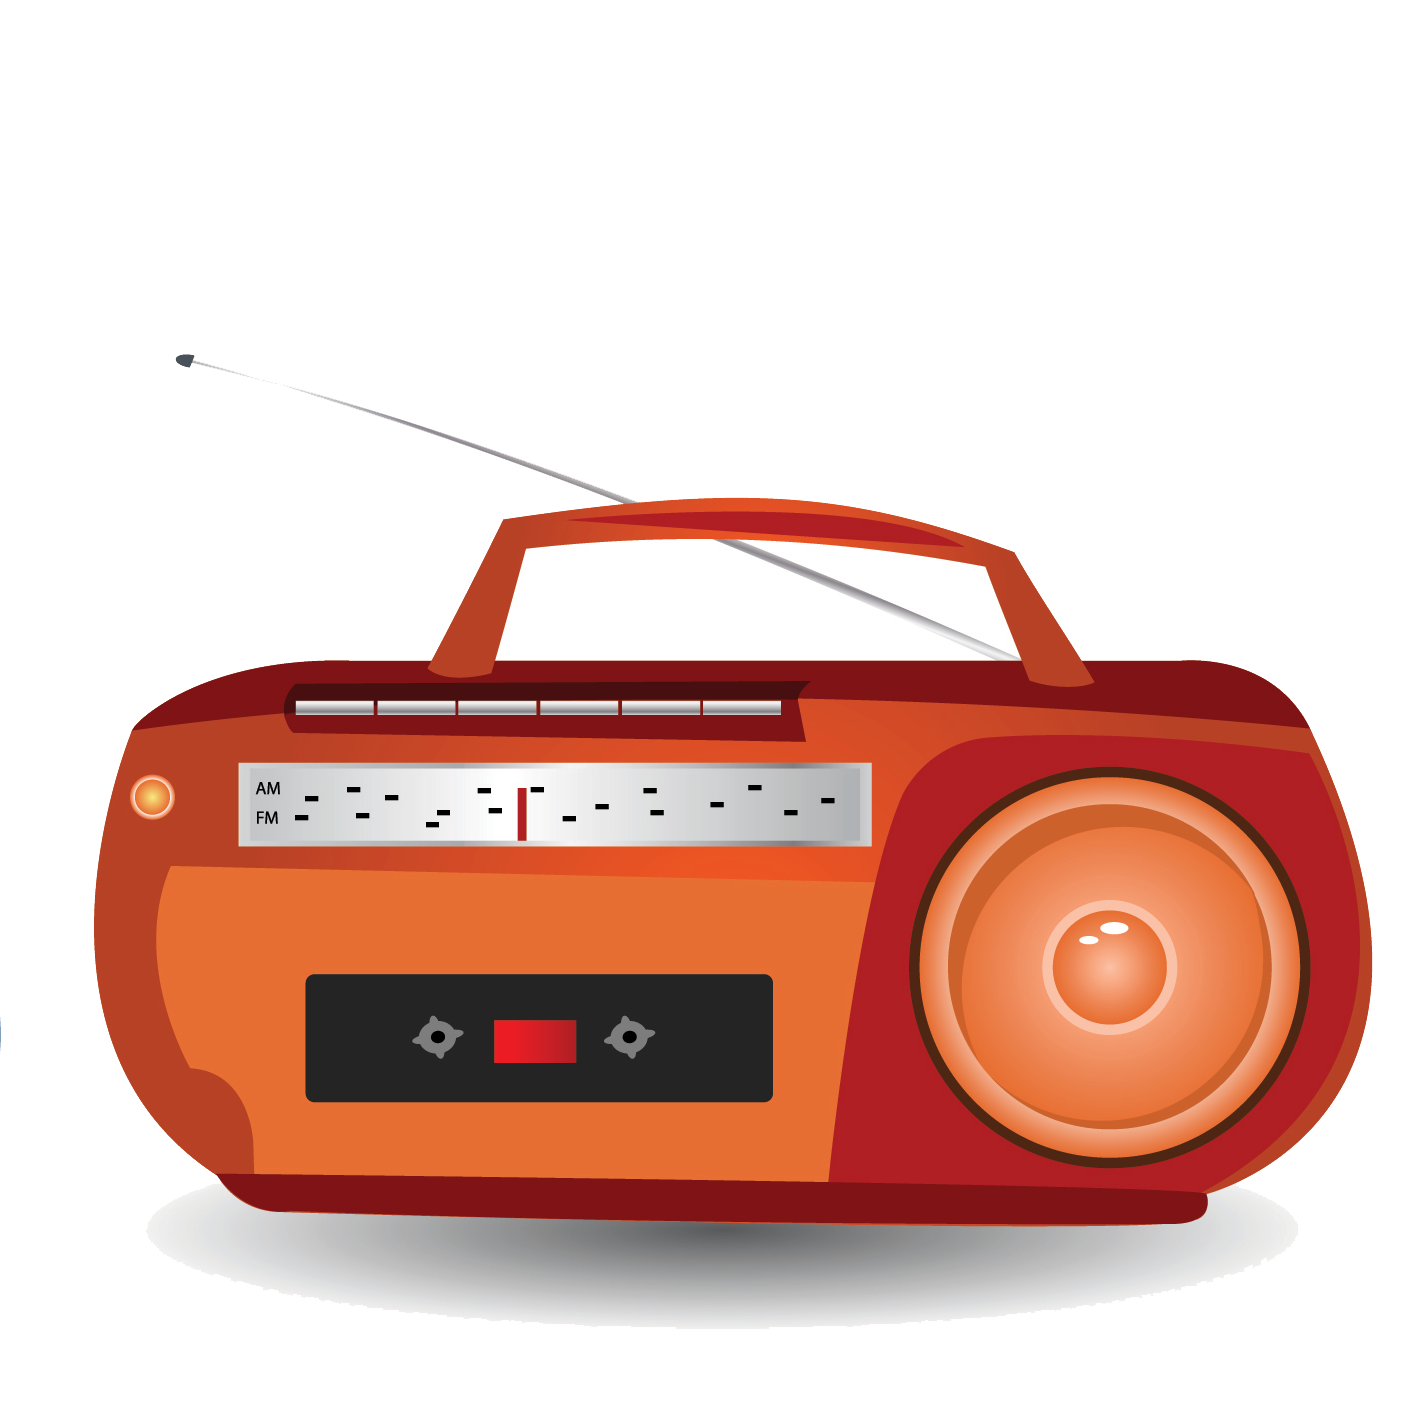 graphic free download Boombox clipart vintage. Radio cartoon transprent png